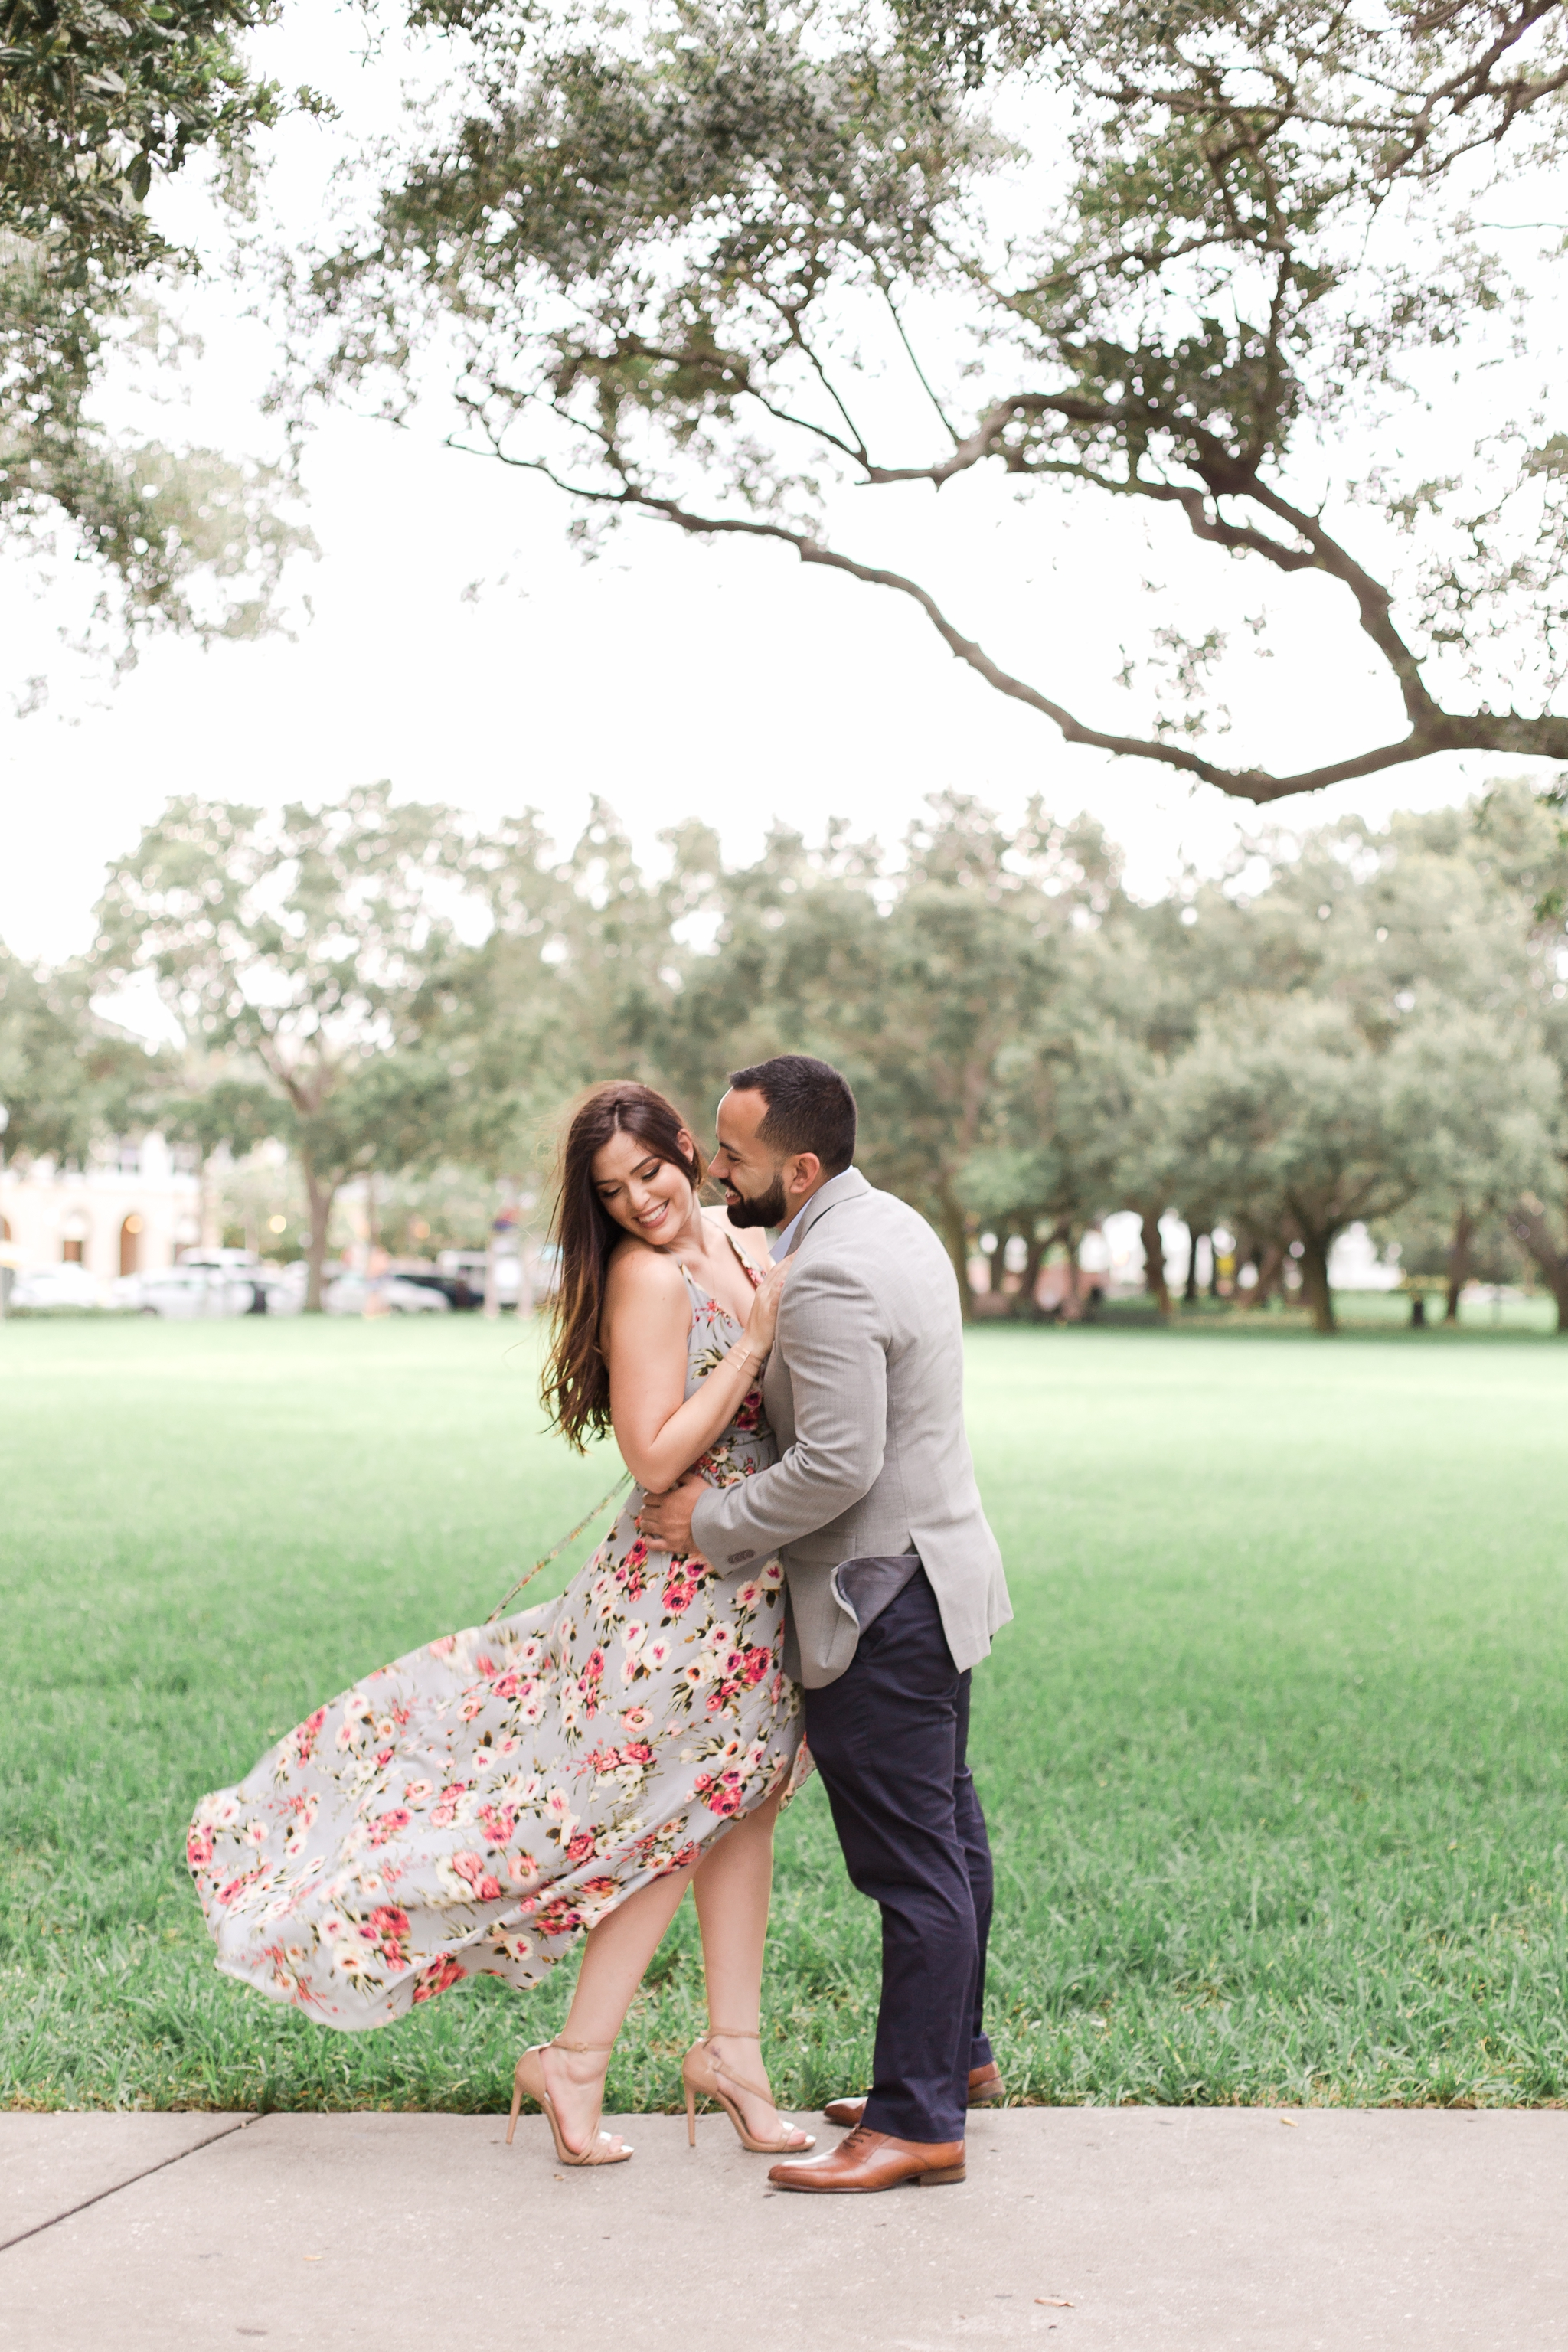 St-pete-florida-engagement-session-nicole-mike-I58A6756-1.jpg